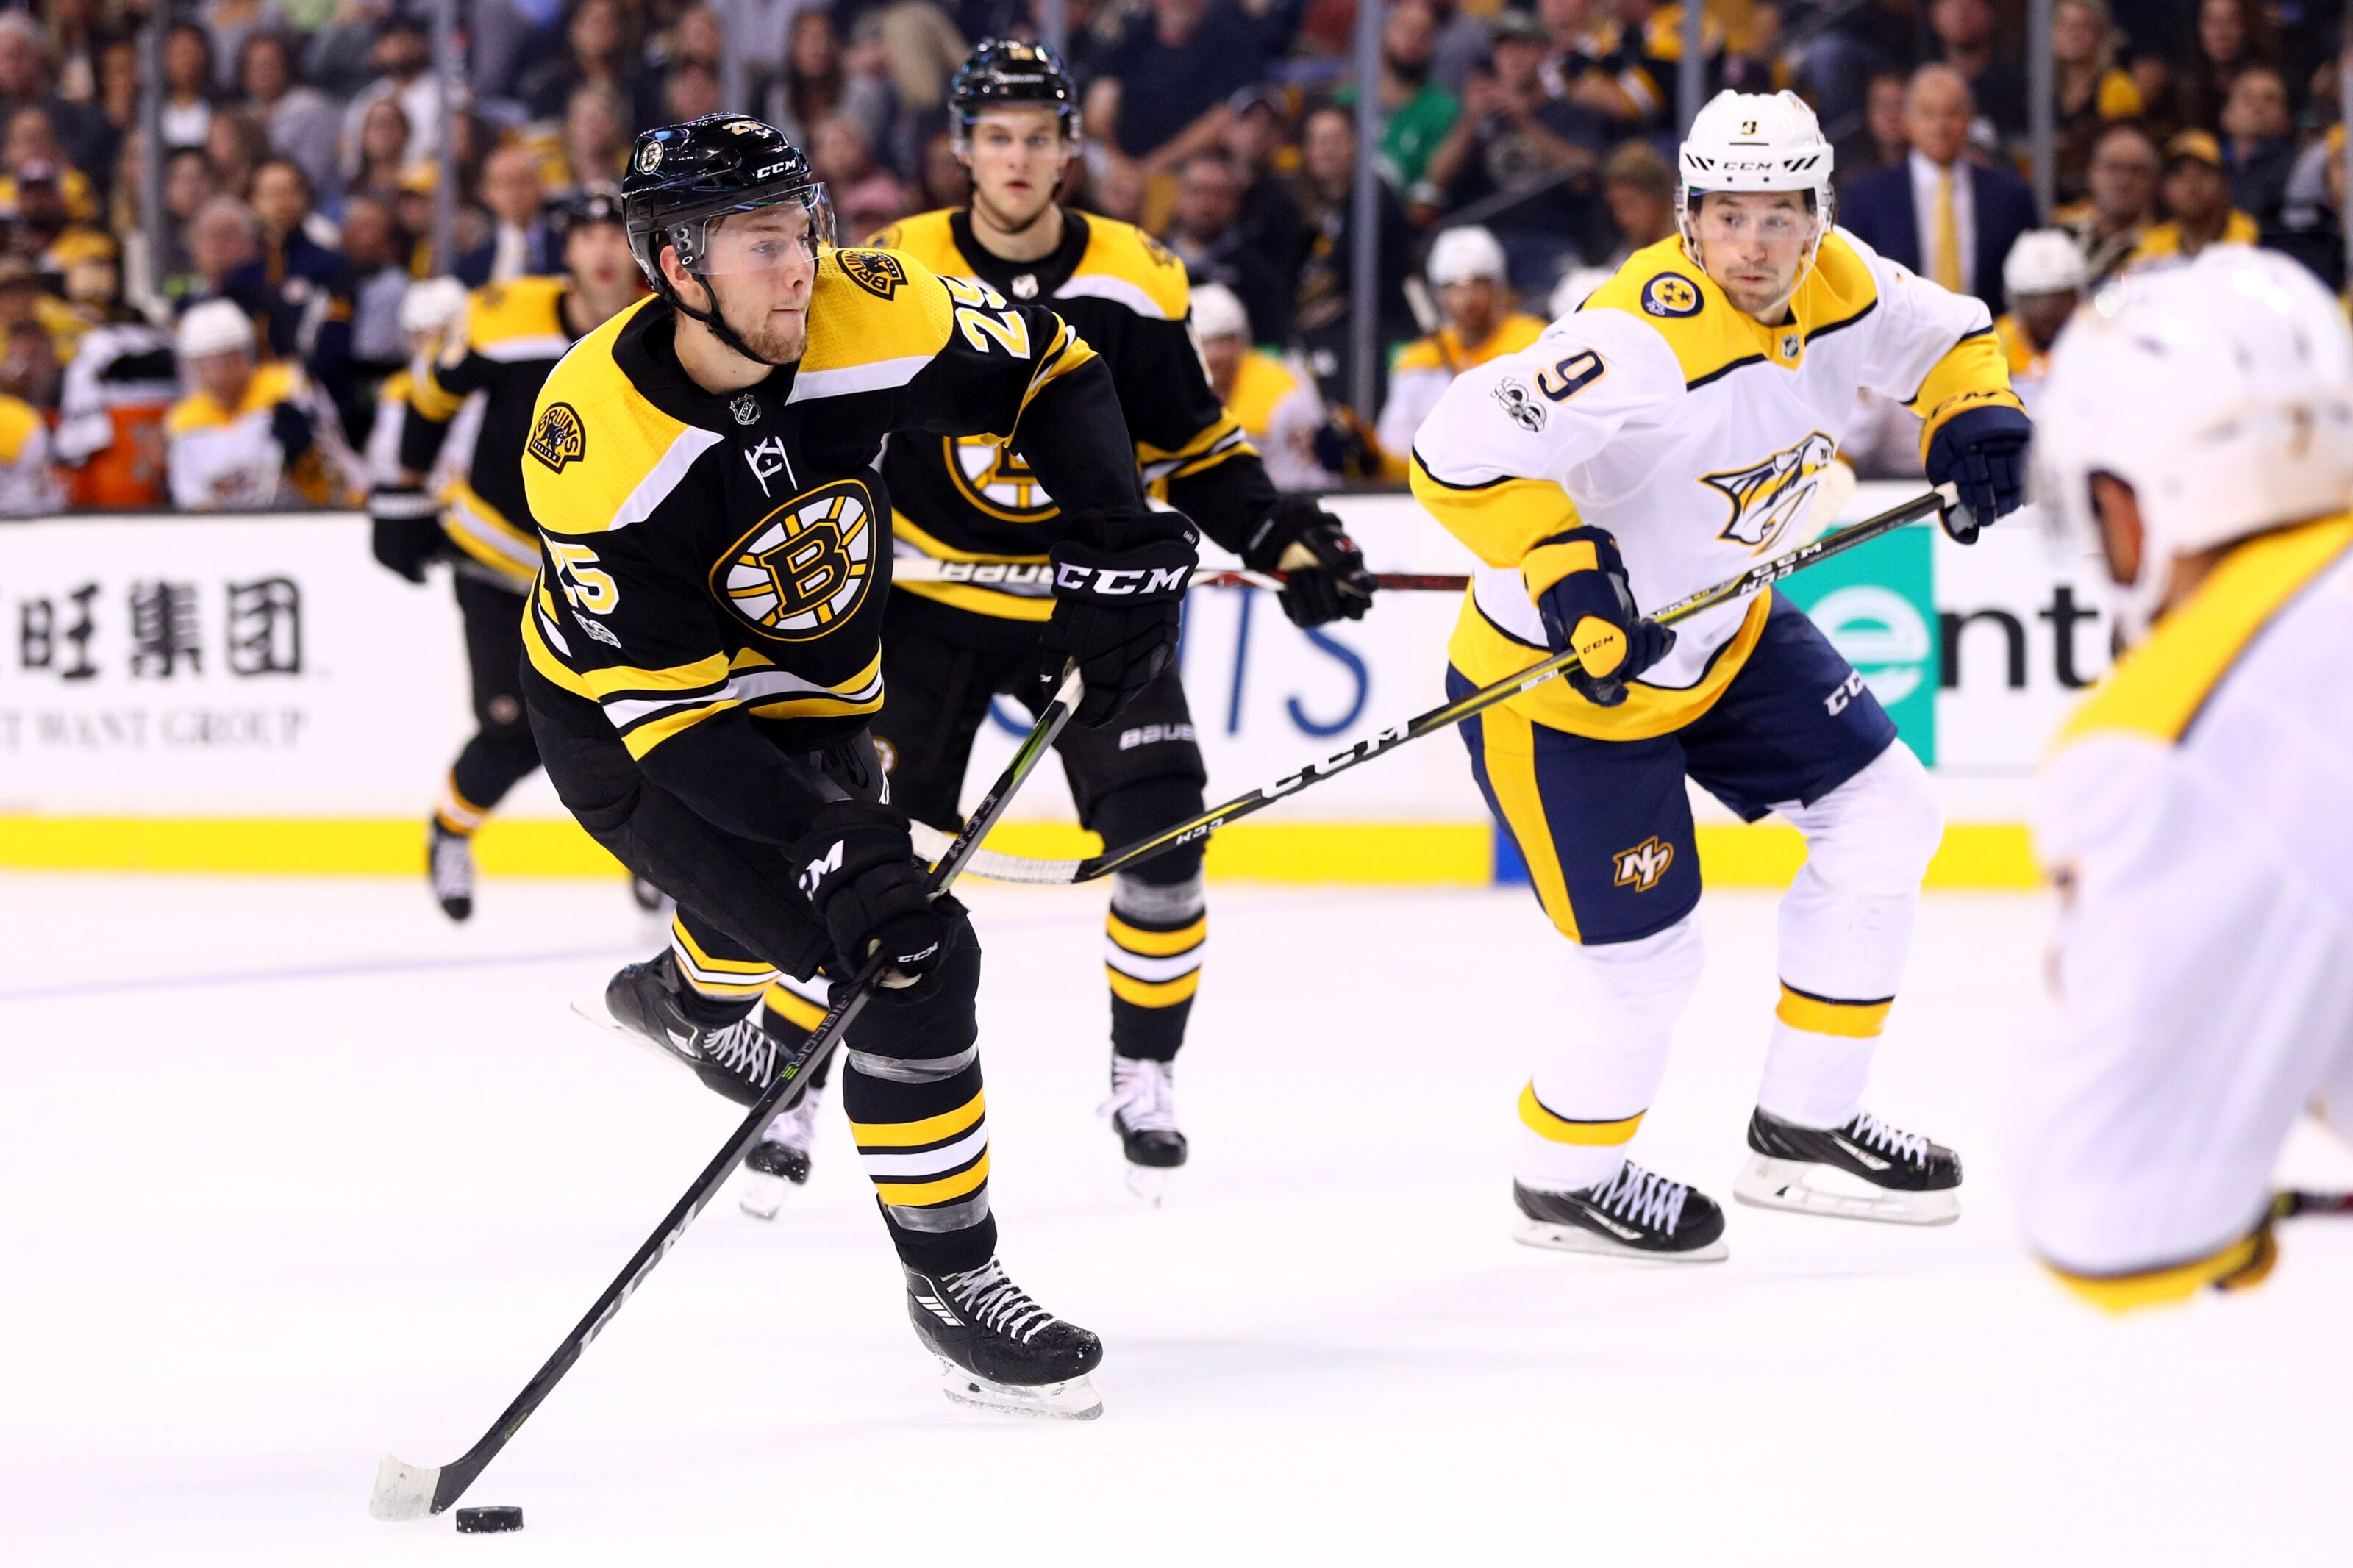 Boston Bruins: Boston Bruins Player Outlook 2018: Brandon Carlo Will Have